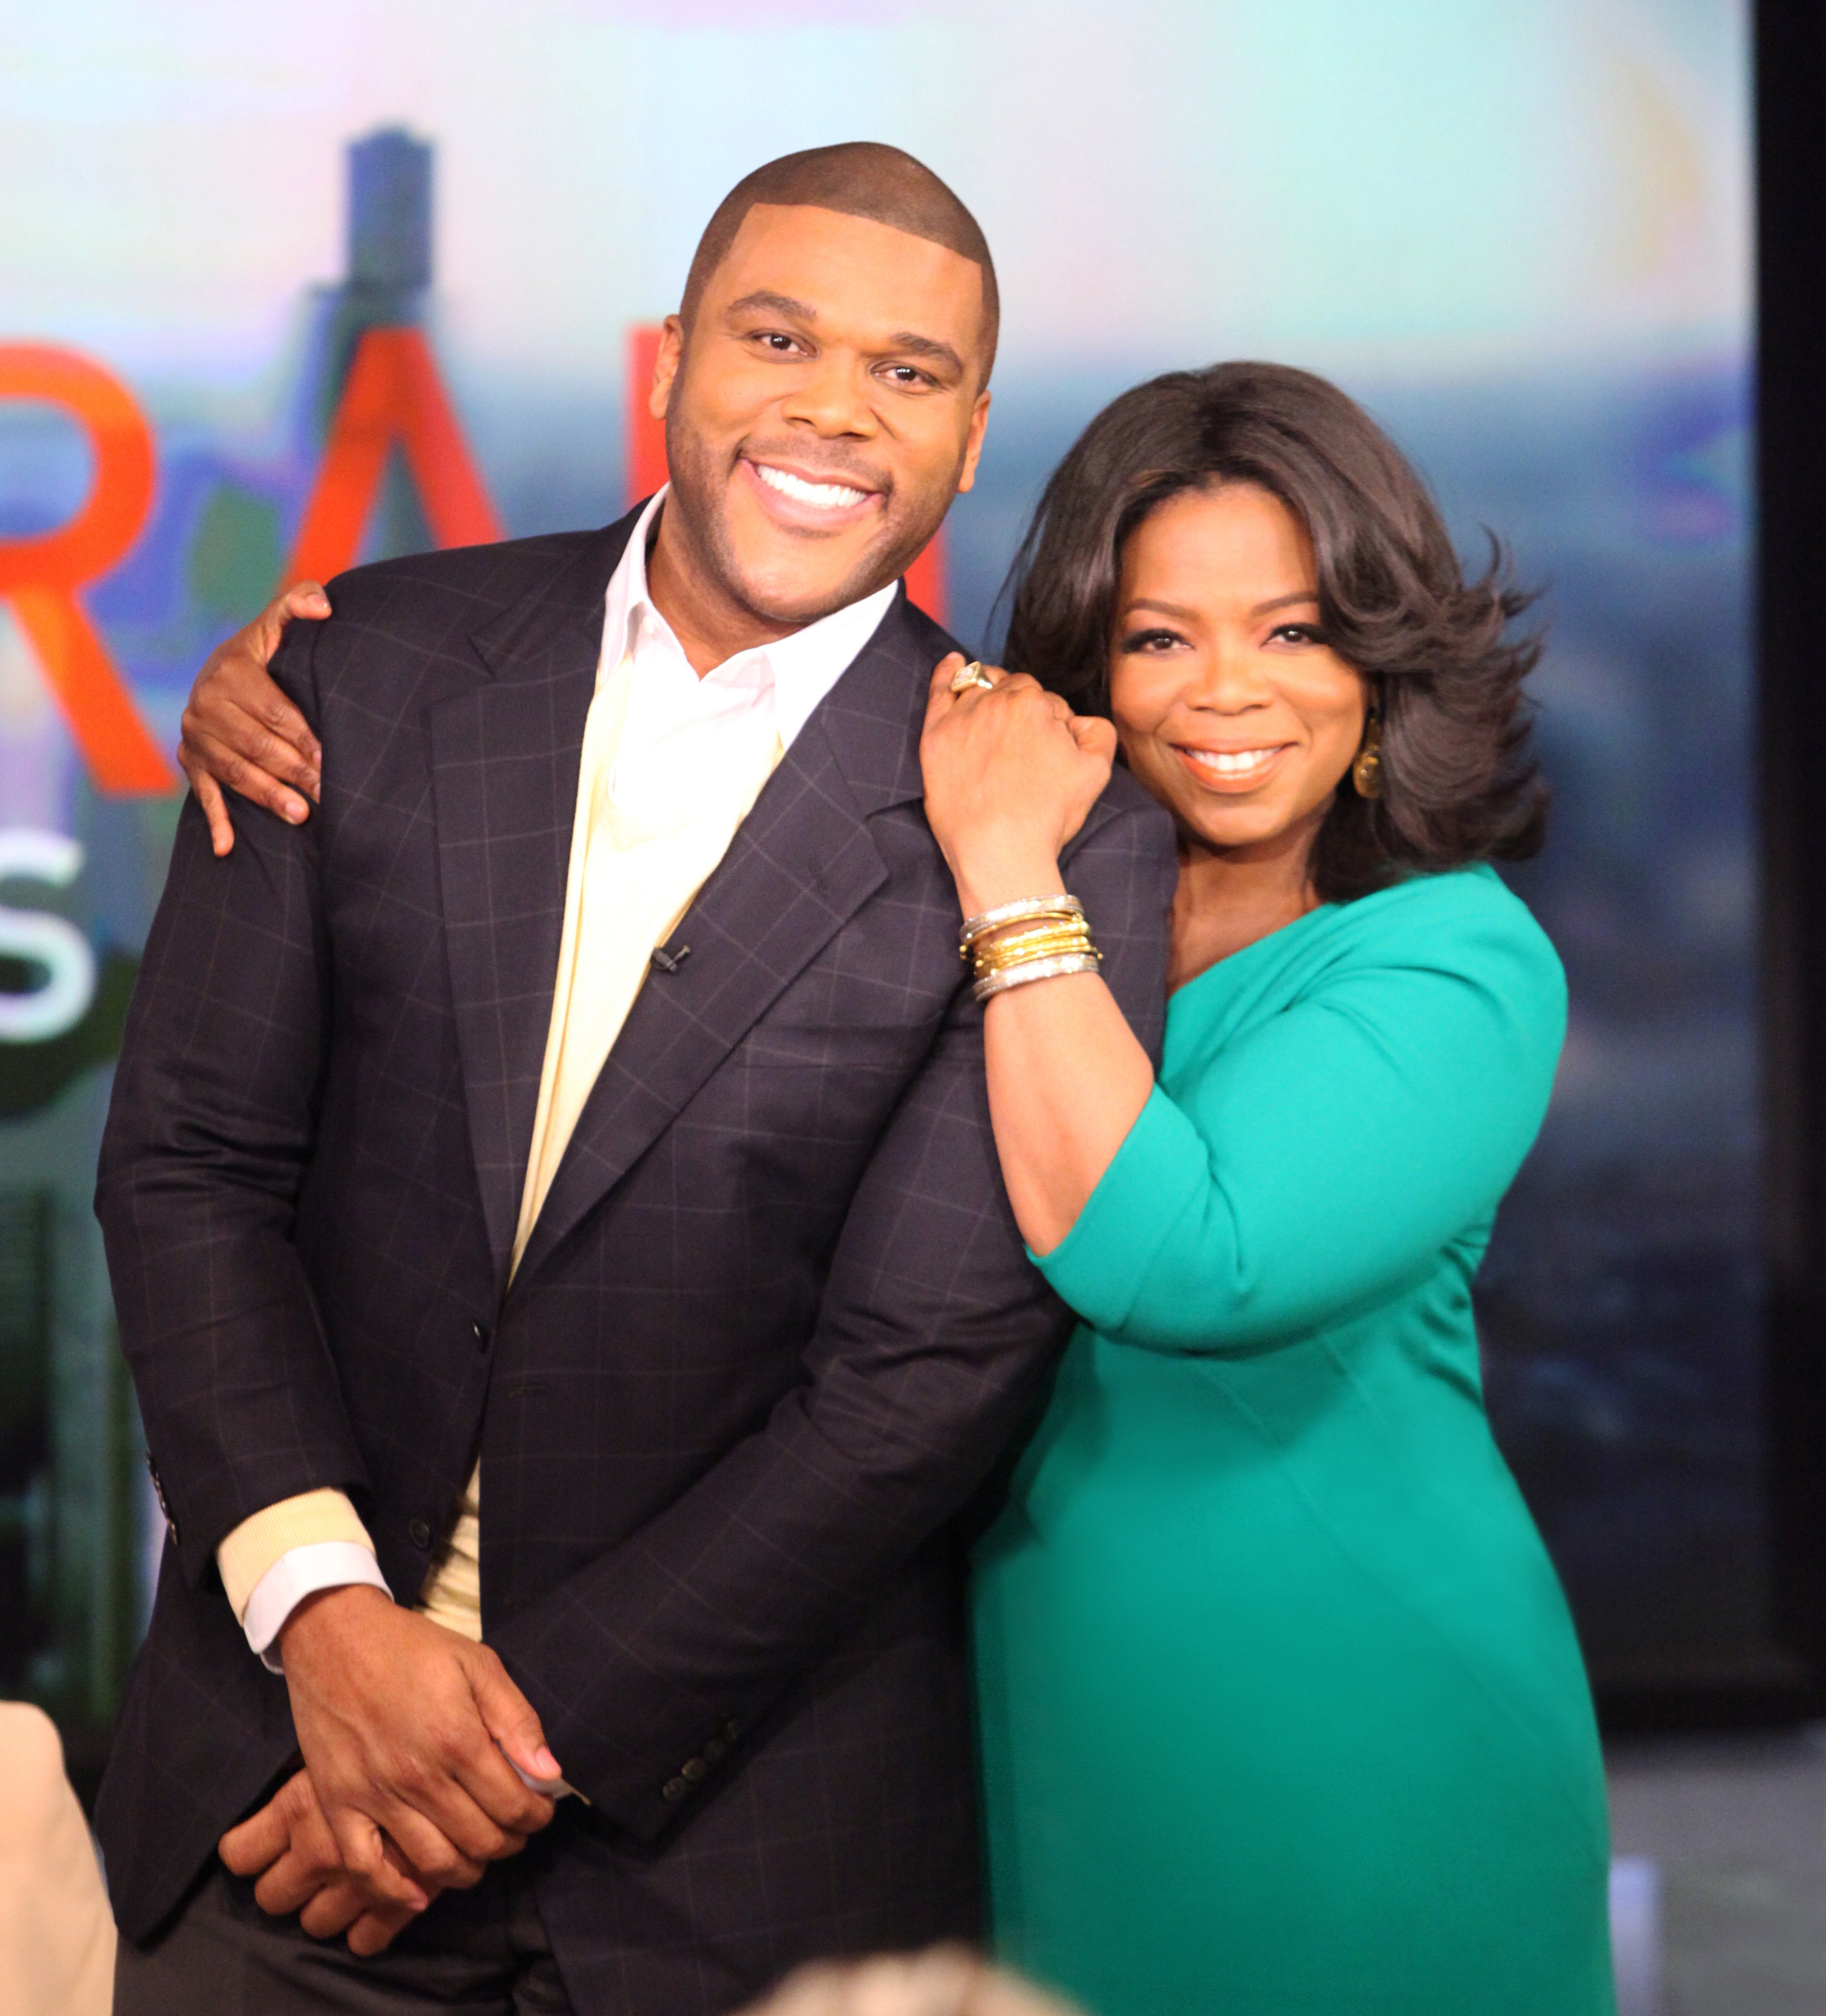 Producer Tyler Perry and Oprah Winfrey plan to bring another Perry series to Winfrey's OWN network.